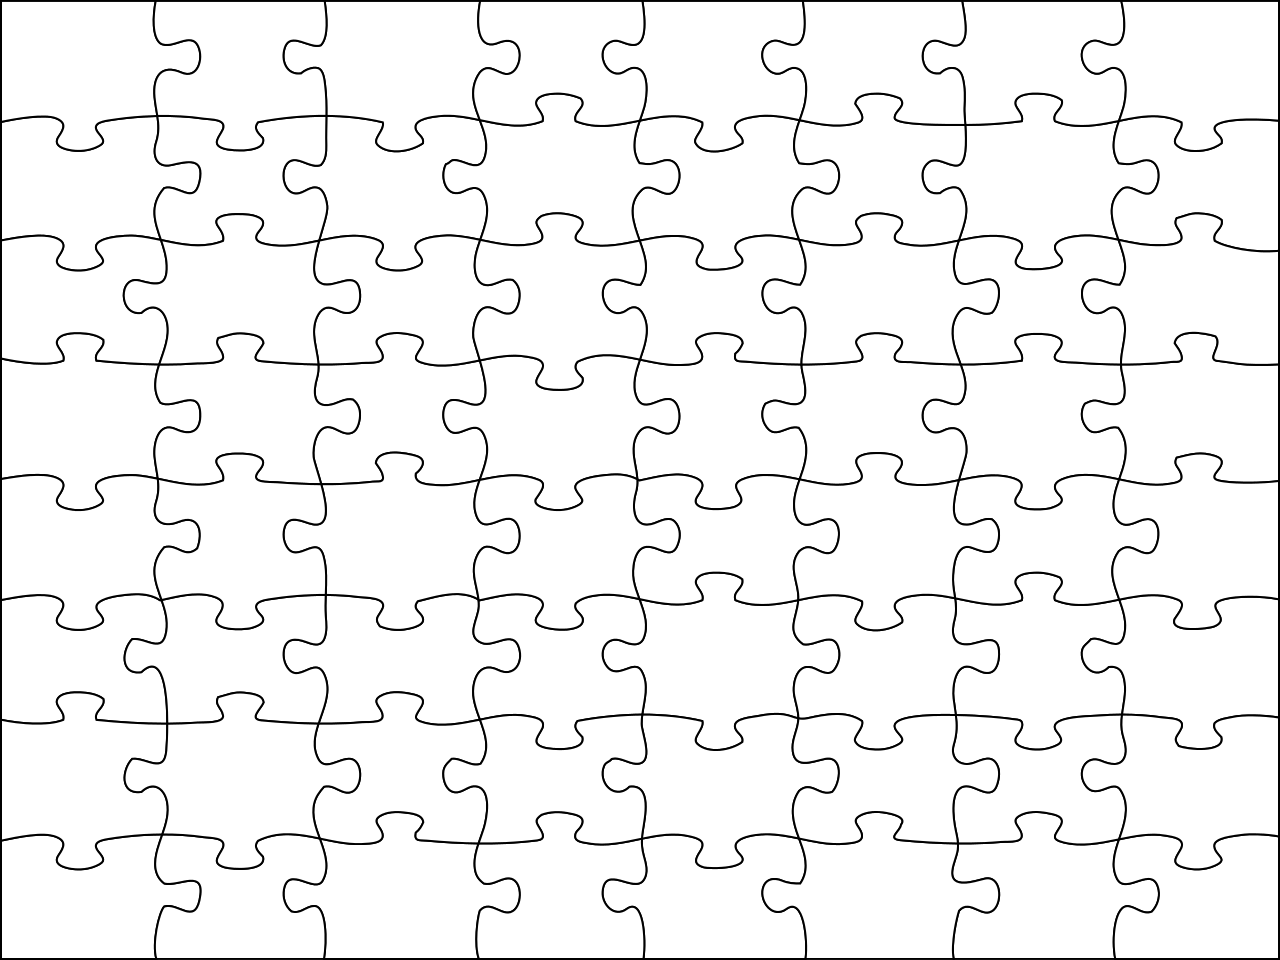 File:Jigsaw Puzzle.svg - Wikimedia Commons - PNG Jigsaw Puzzle